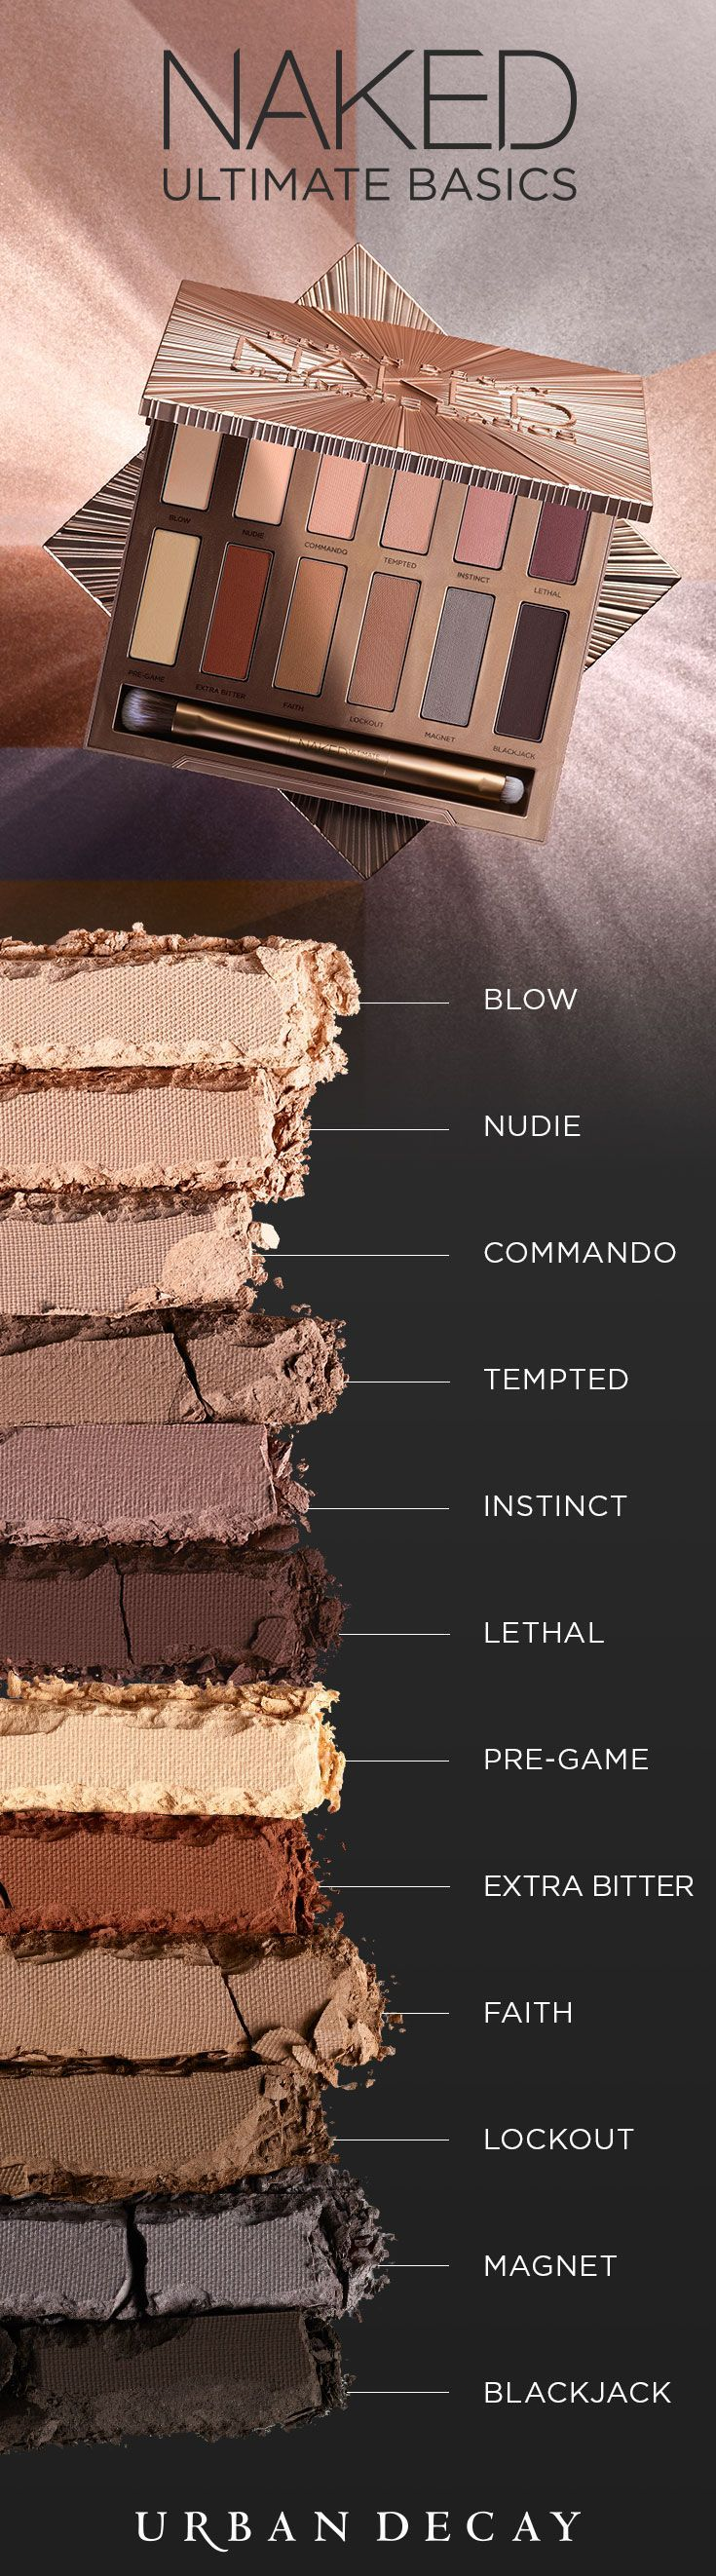 Introducing Naked Ultimate Basics—the matte eyeshadow palette you've been begging for! This sleek square case is loaded with 12 ALL-NEW, must-have neutrals. Every single one is not only new, but also exclusive to this palette! Make it yours now at http://urbandecay.com. #YouLookBetterNaked